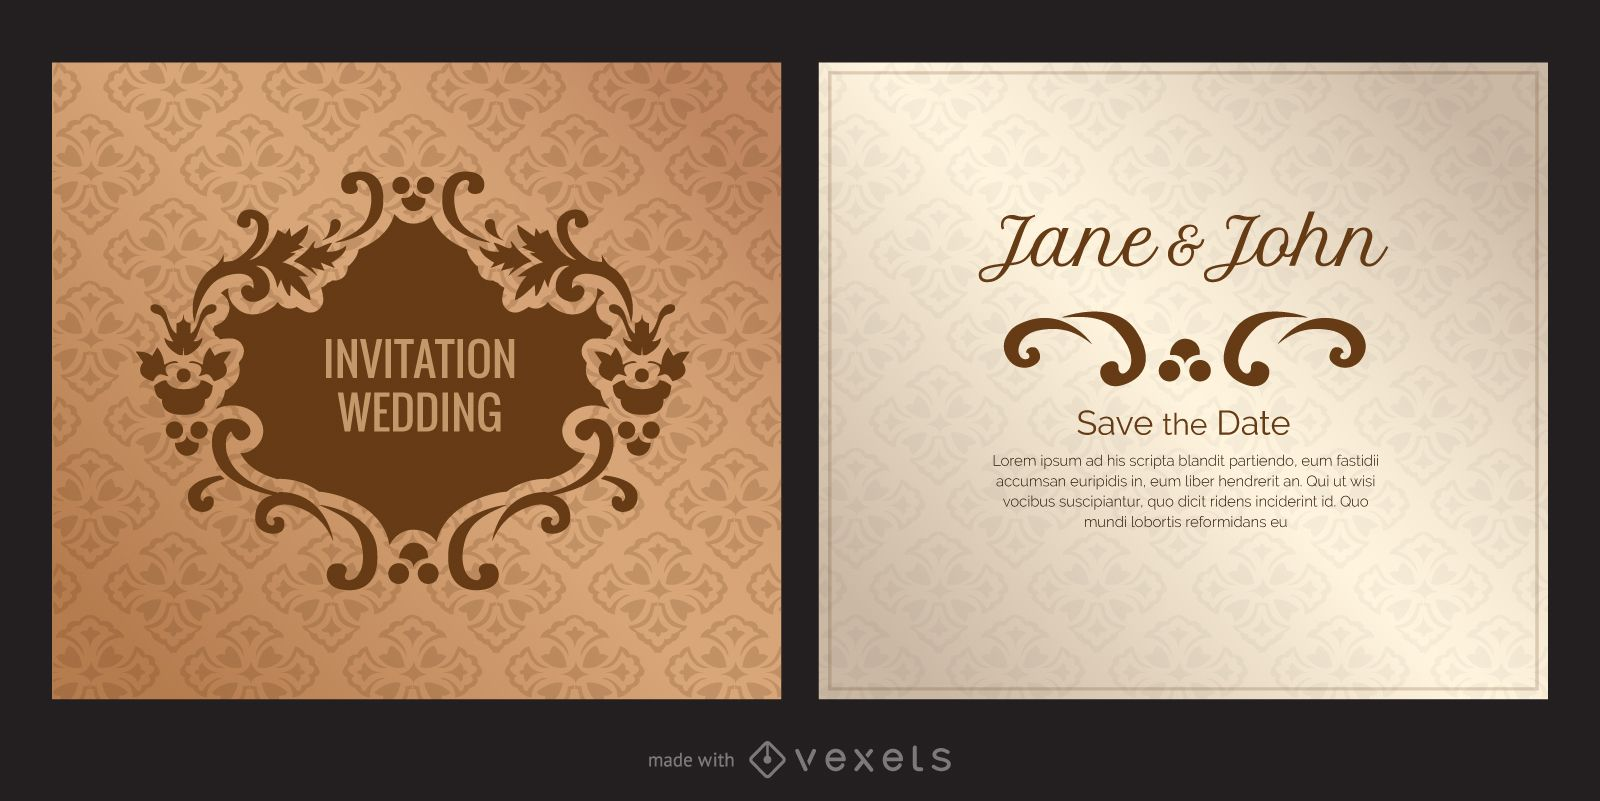 Wedding card invitation maker editable design wedding card invitation maker download large image 1600x801px stopboris Image collections